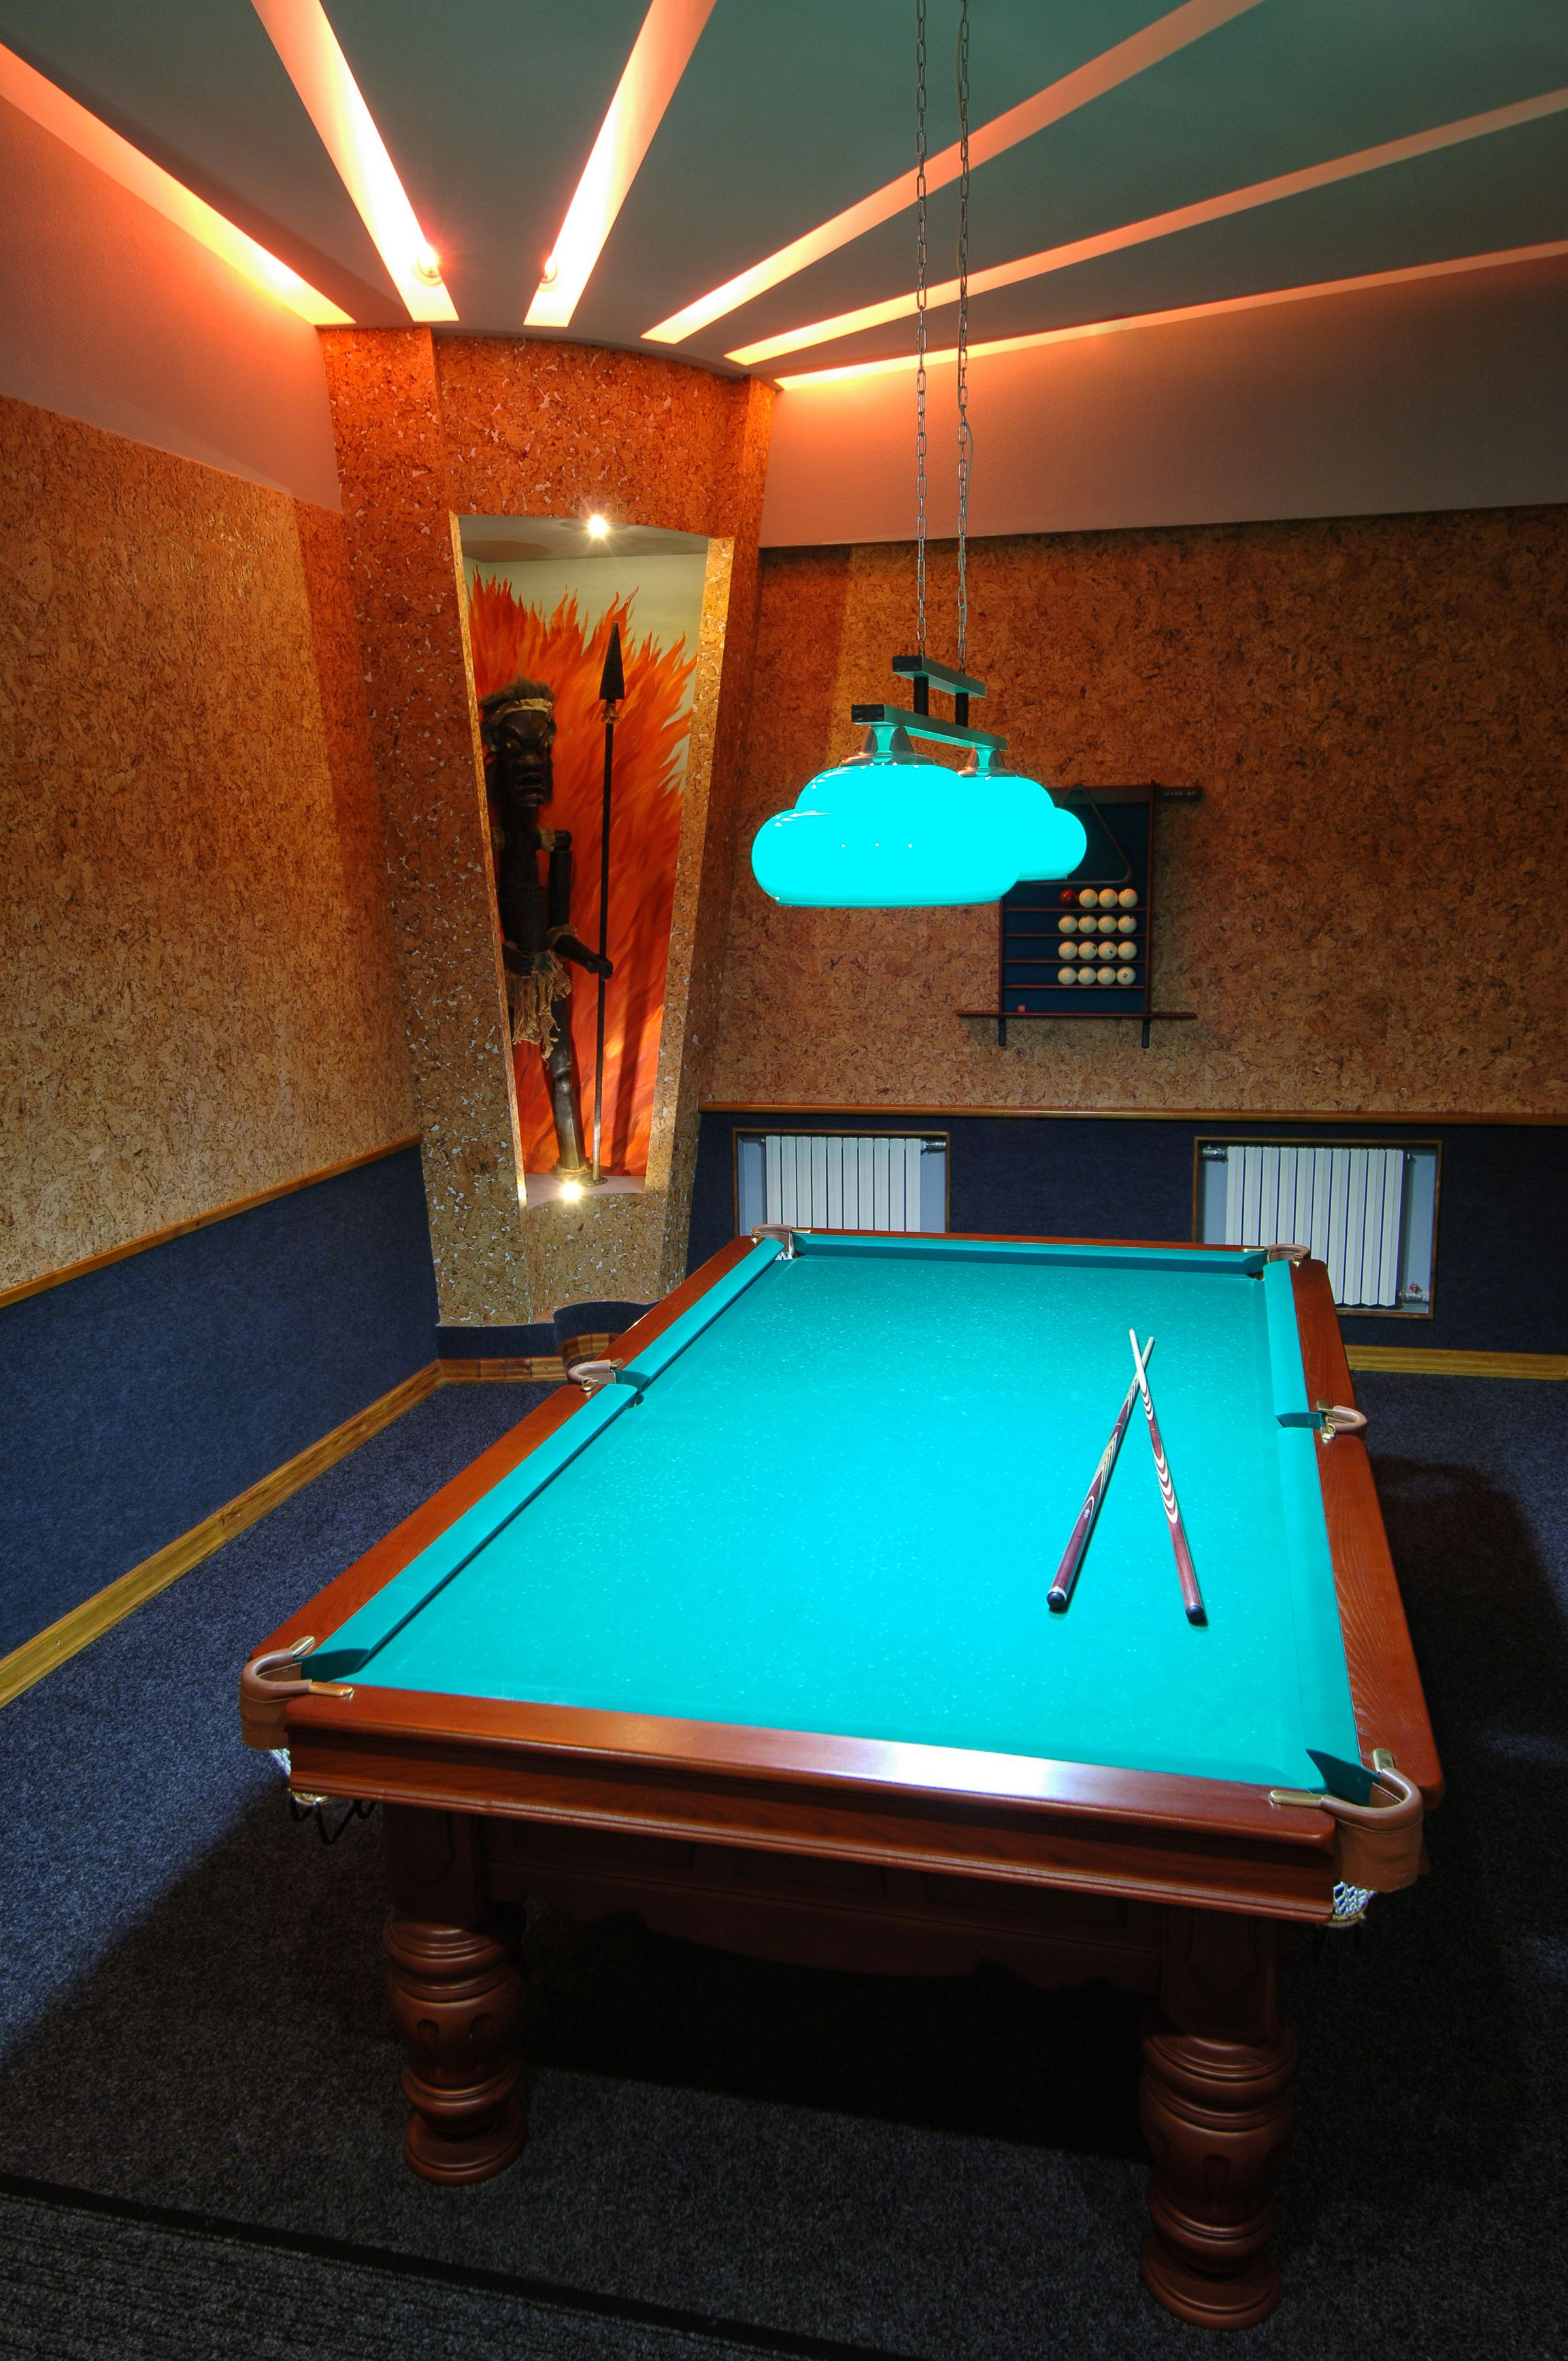 Charmant Stylish Entertainment Room With A Pretty Sweet Little Pool Table.  Www.amazon.com